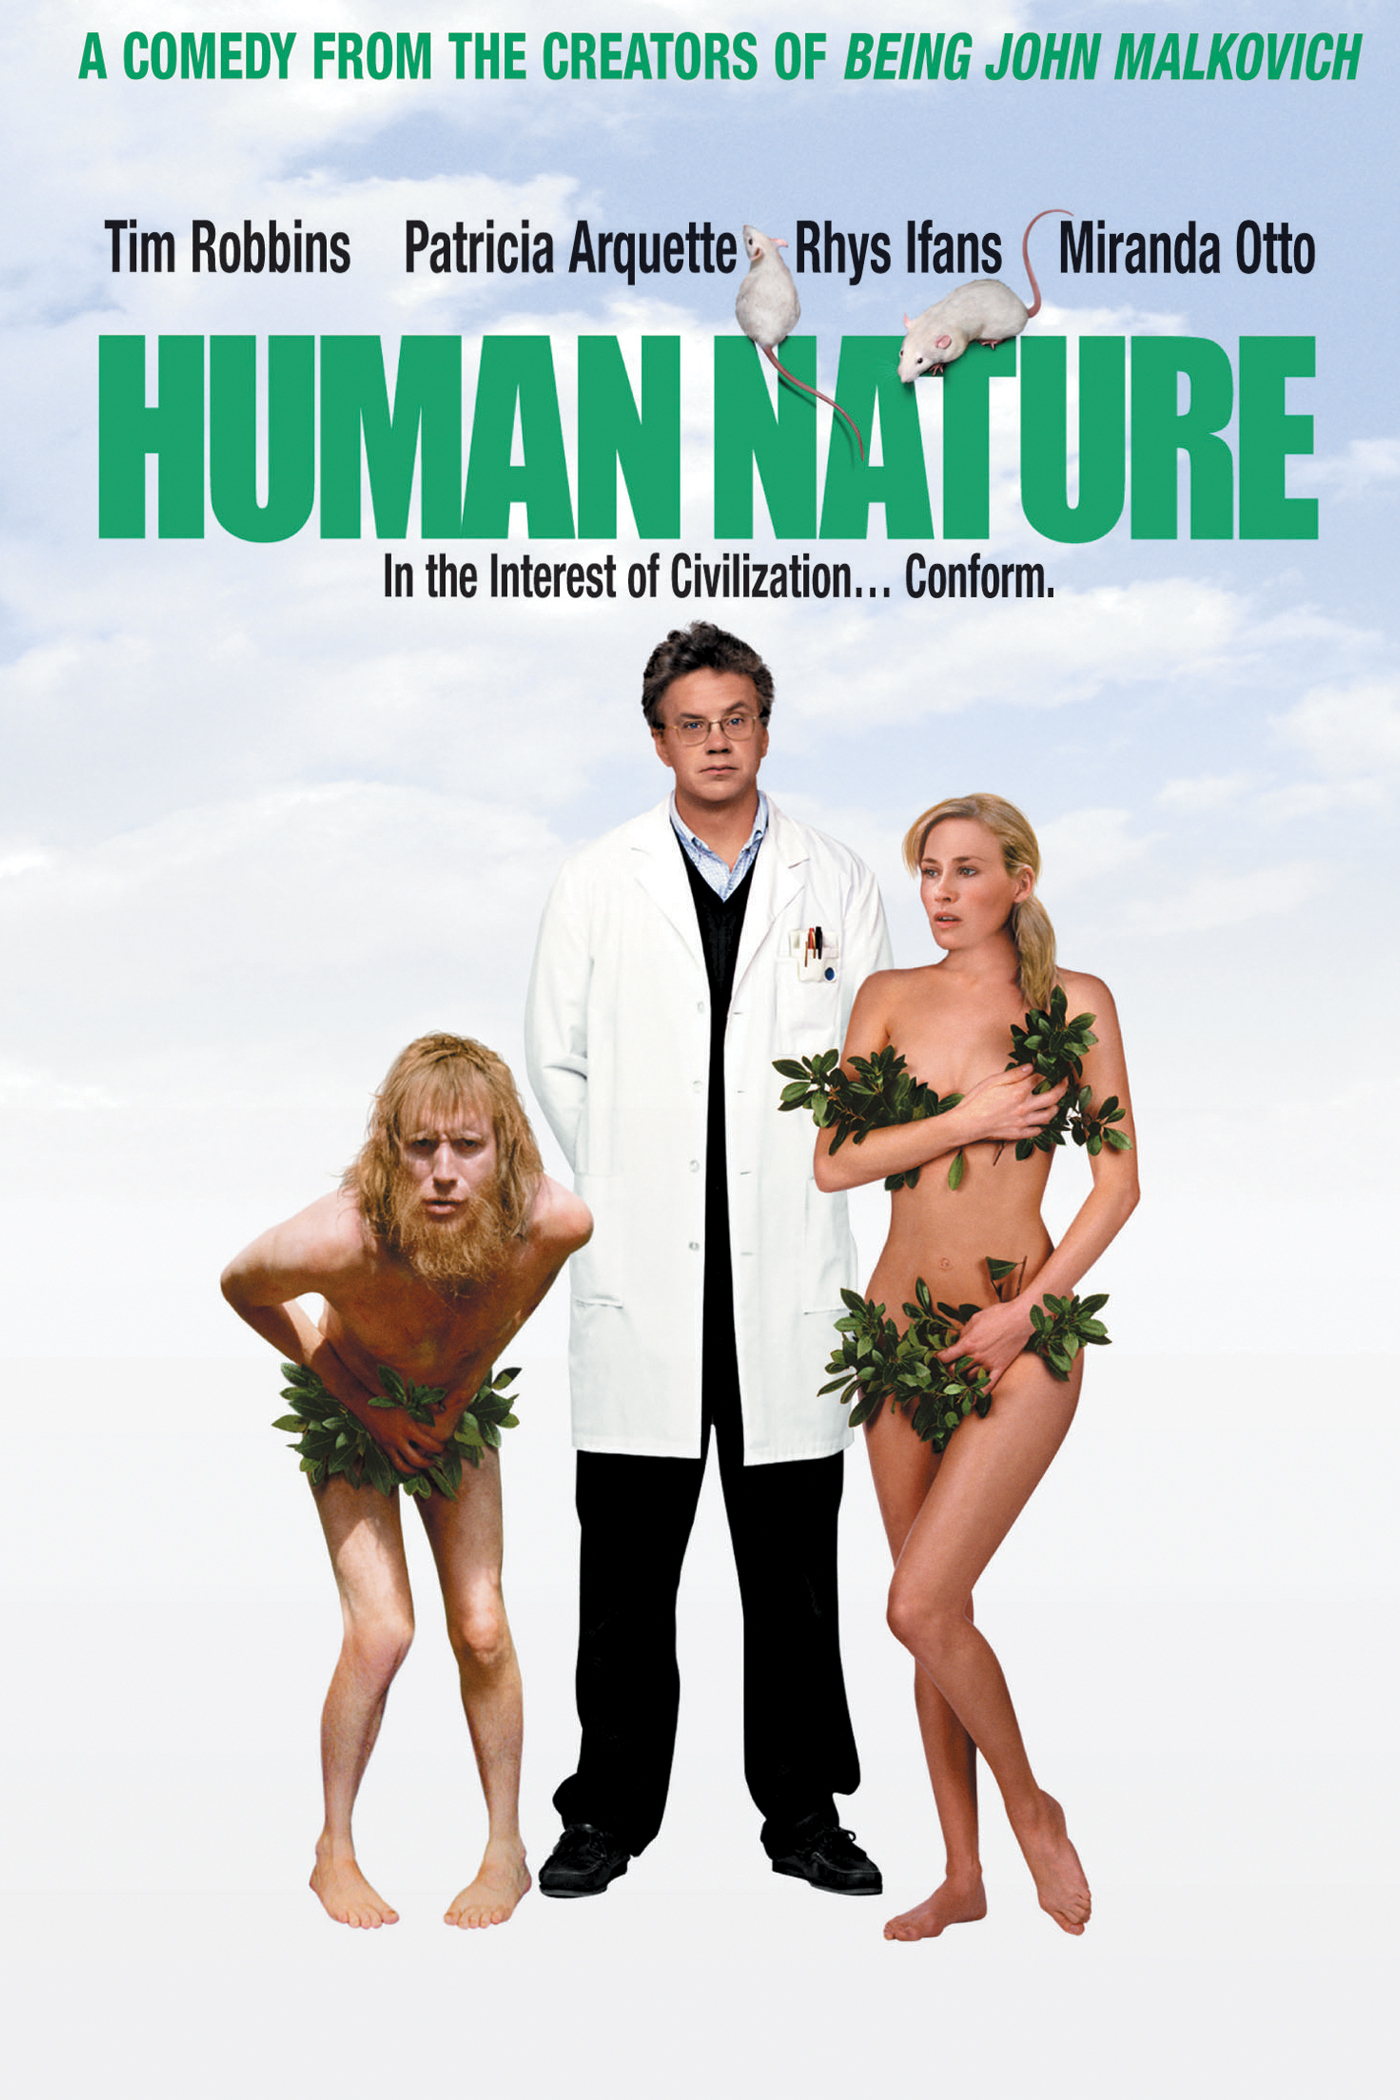 Human Nature Michel Gondry